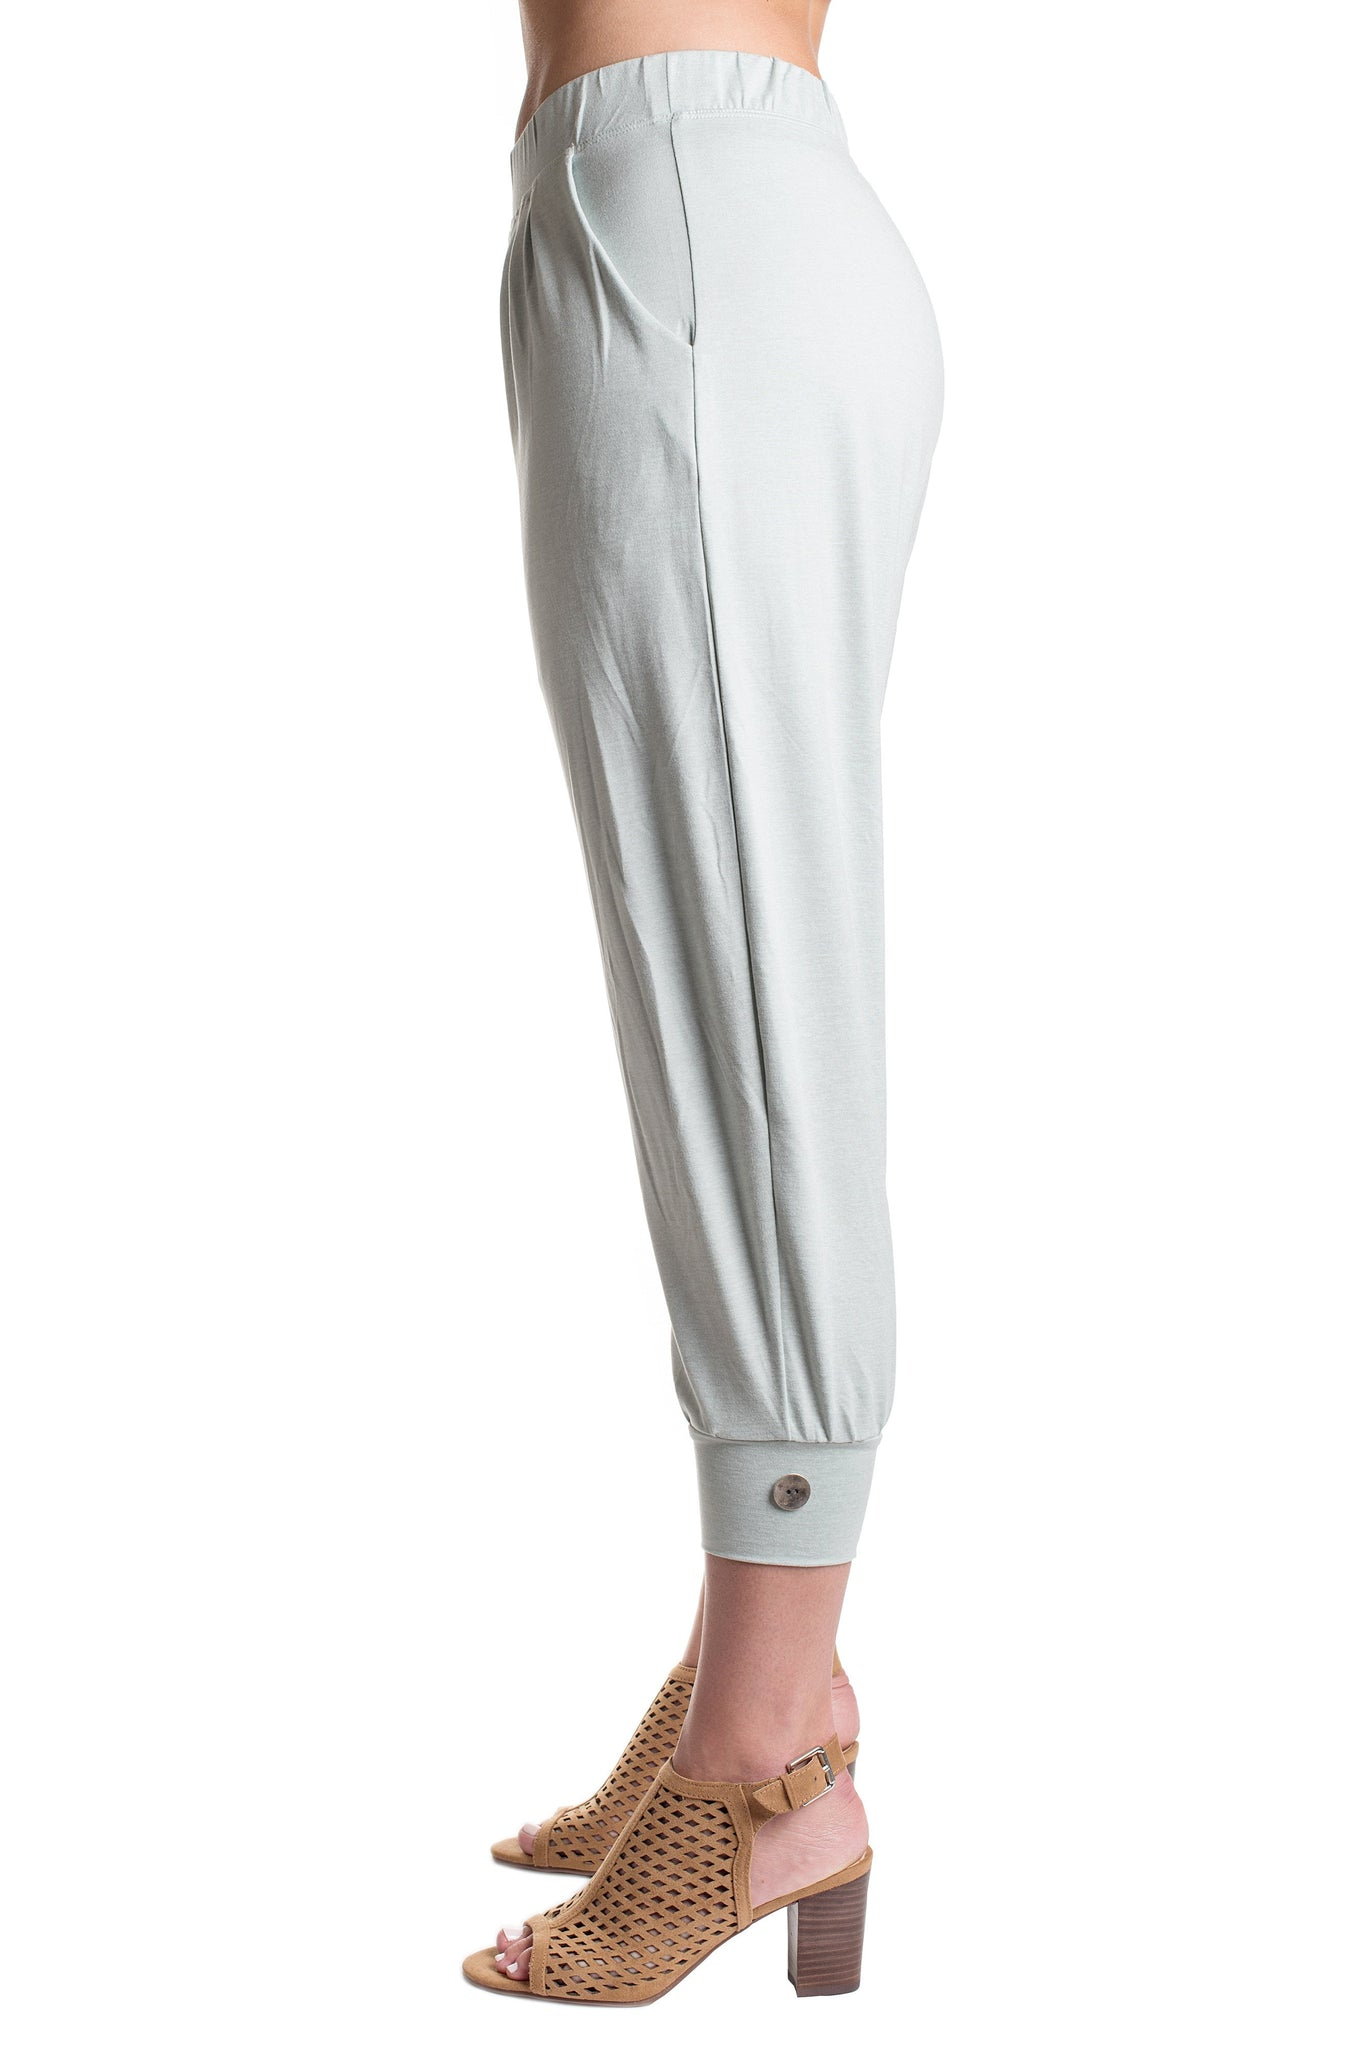 Seafoam Green Cropped Pants